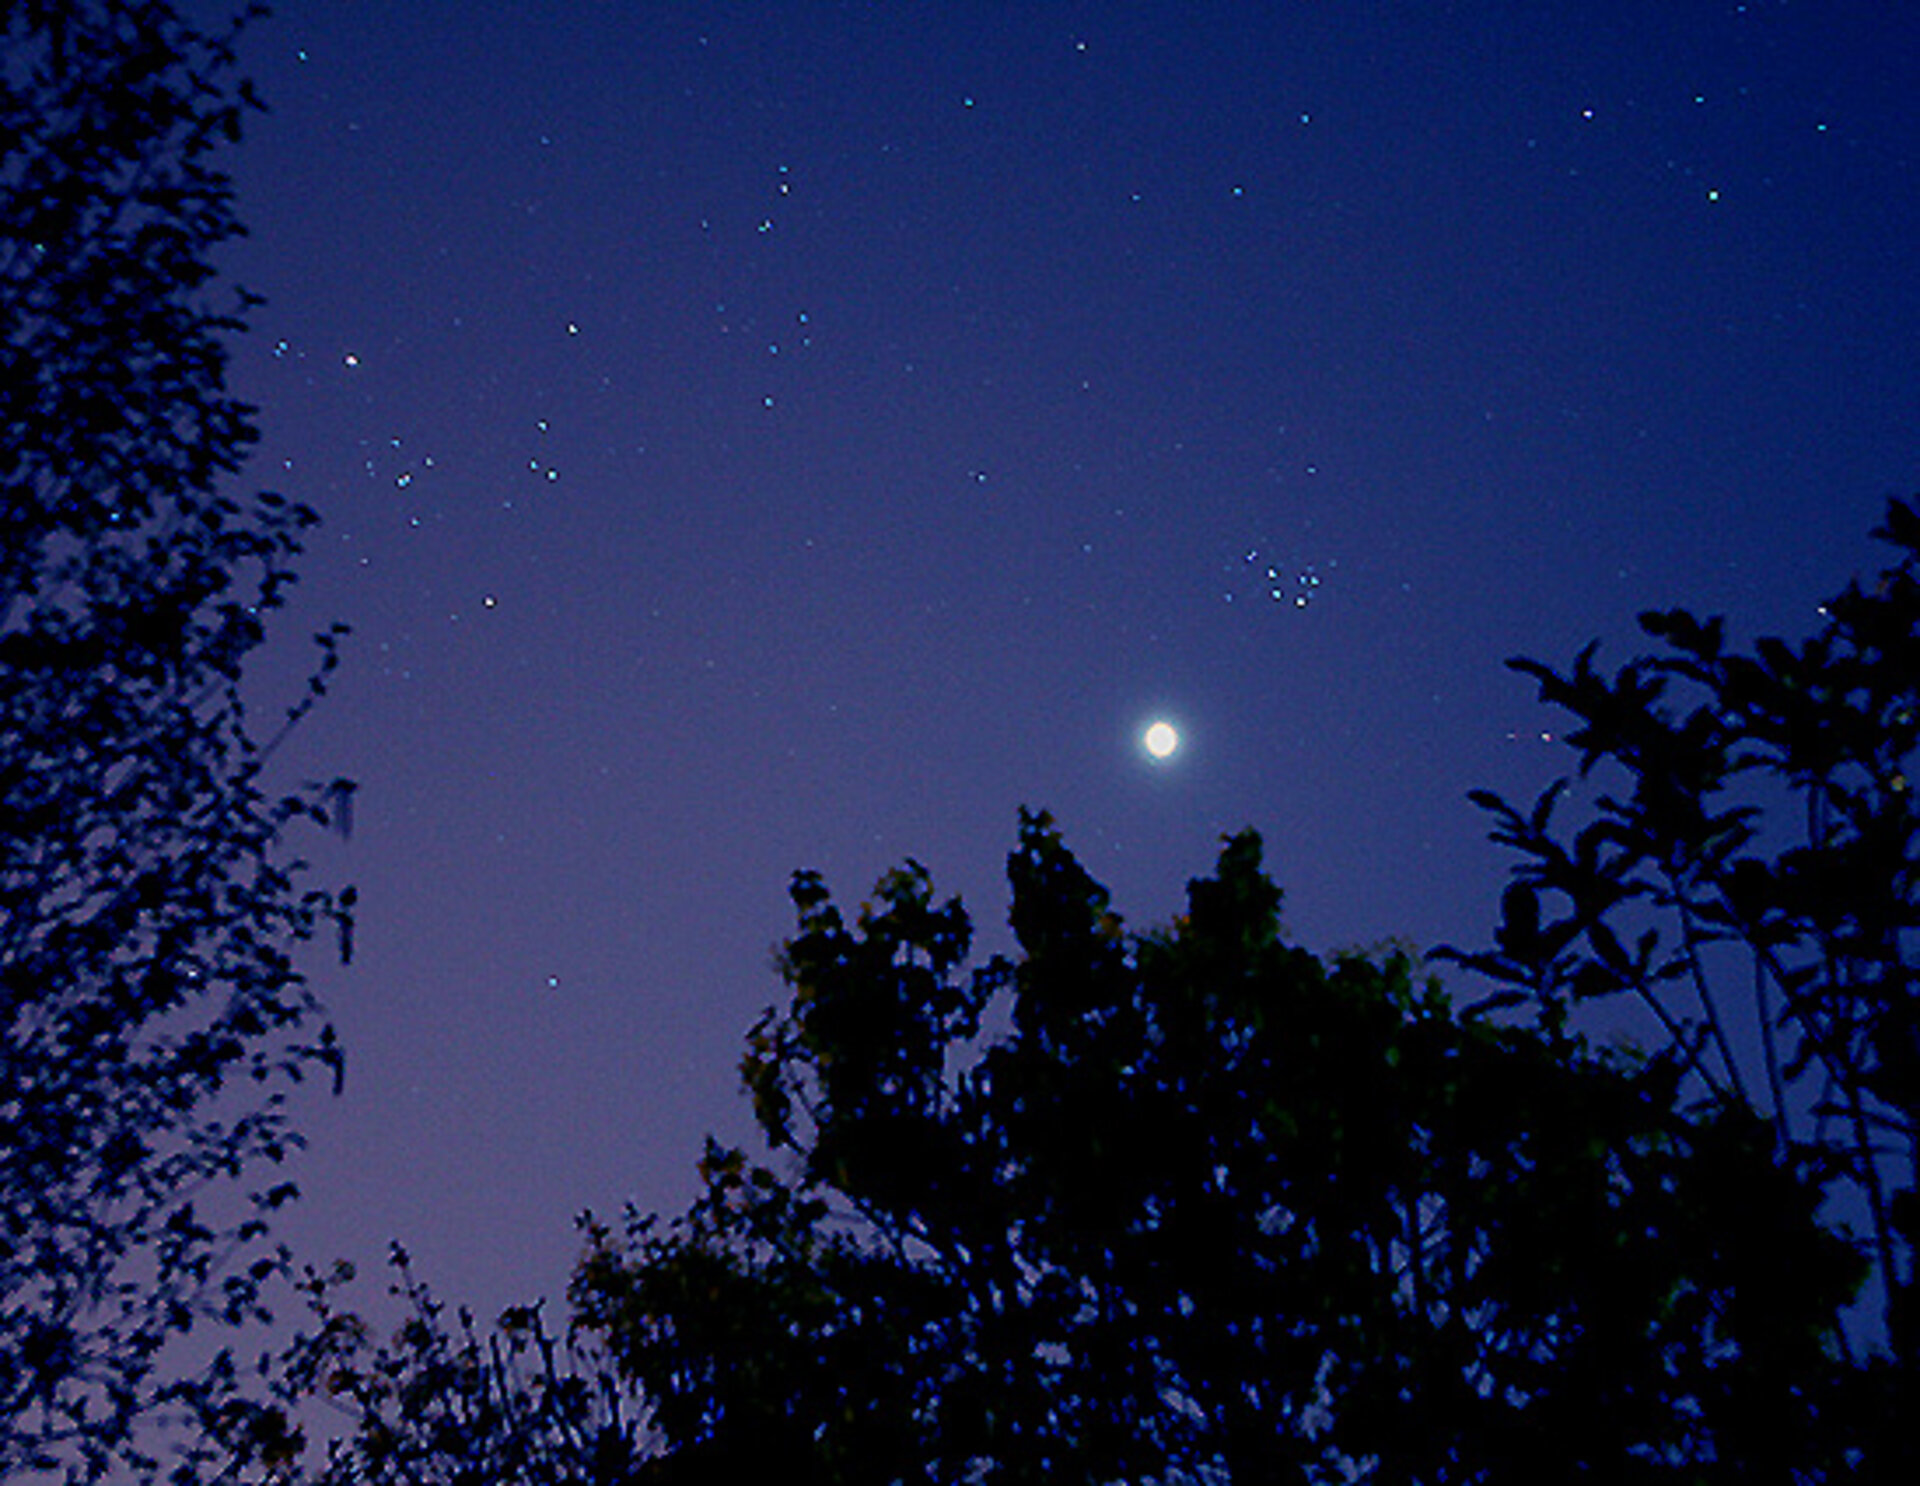 Venus and the constellation Pleiades side-by-side